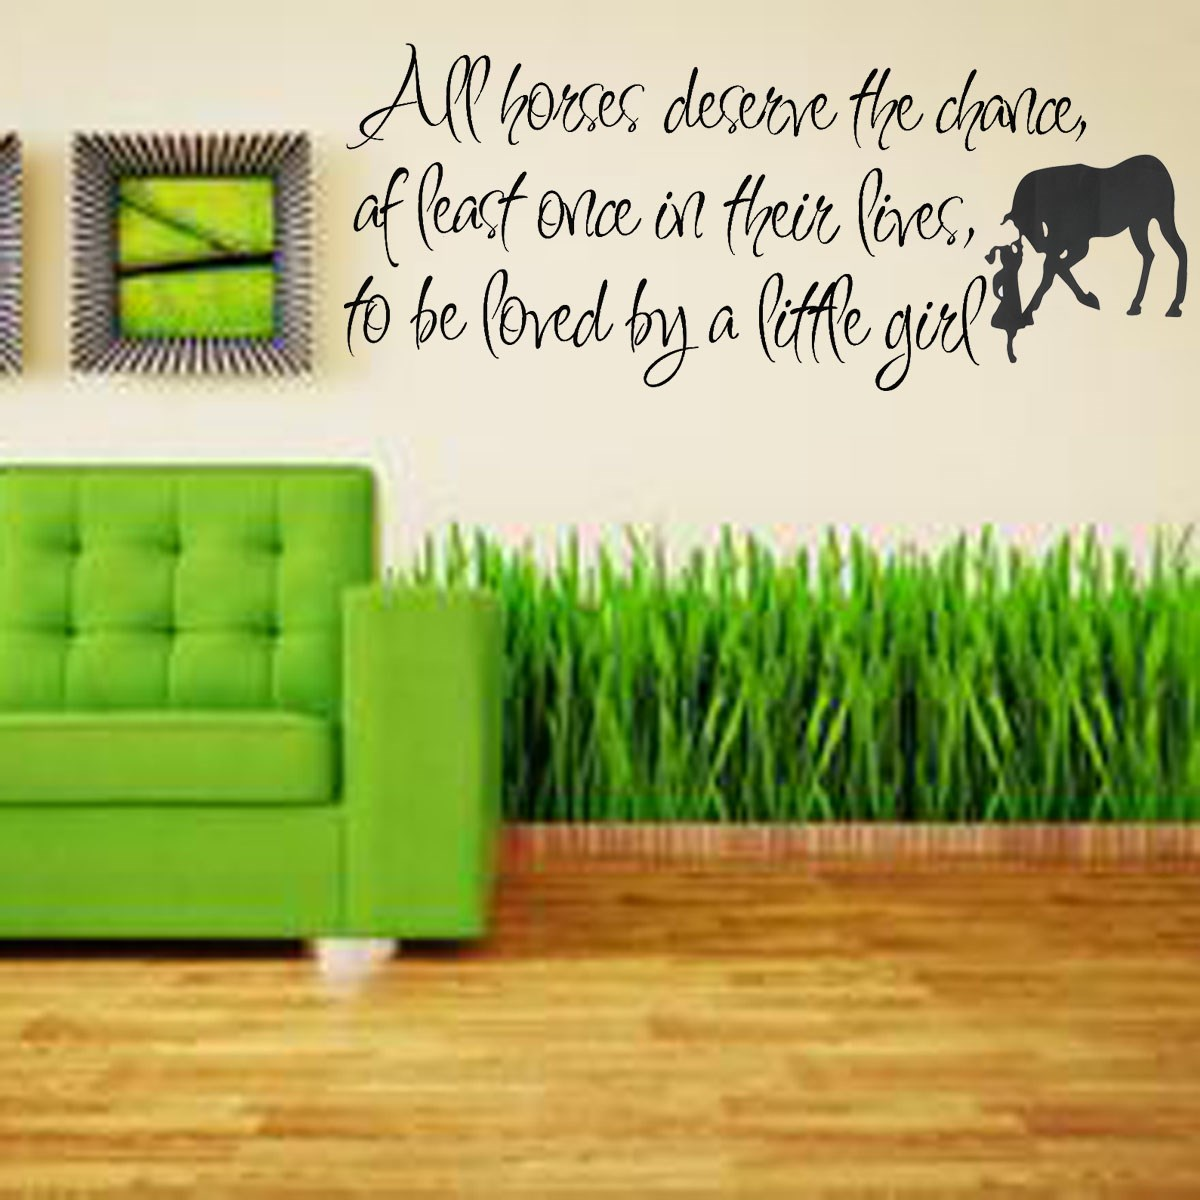 aw9376 change your mood inspirational mirror decal motivational modern design best price all horses deserve the chance love horse girls inspiration window wall stickers